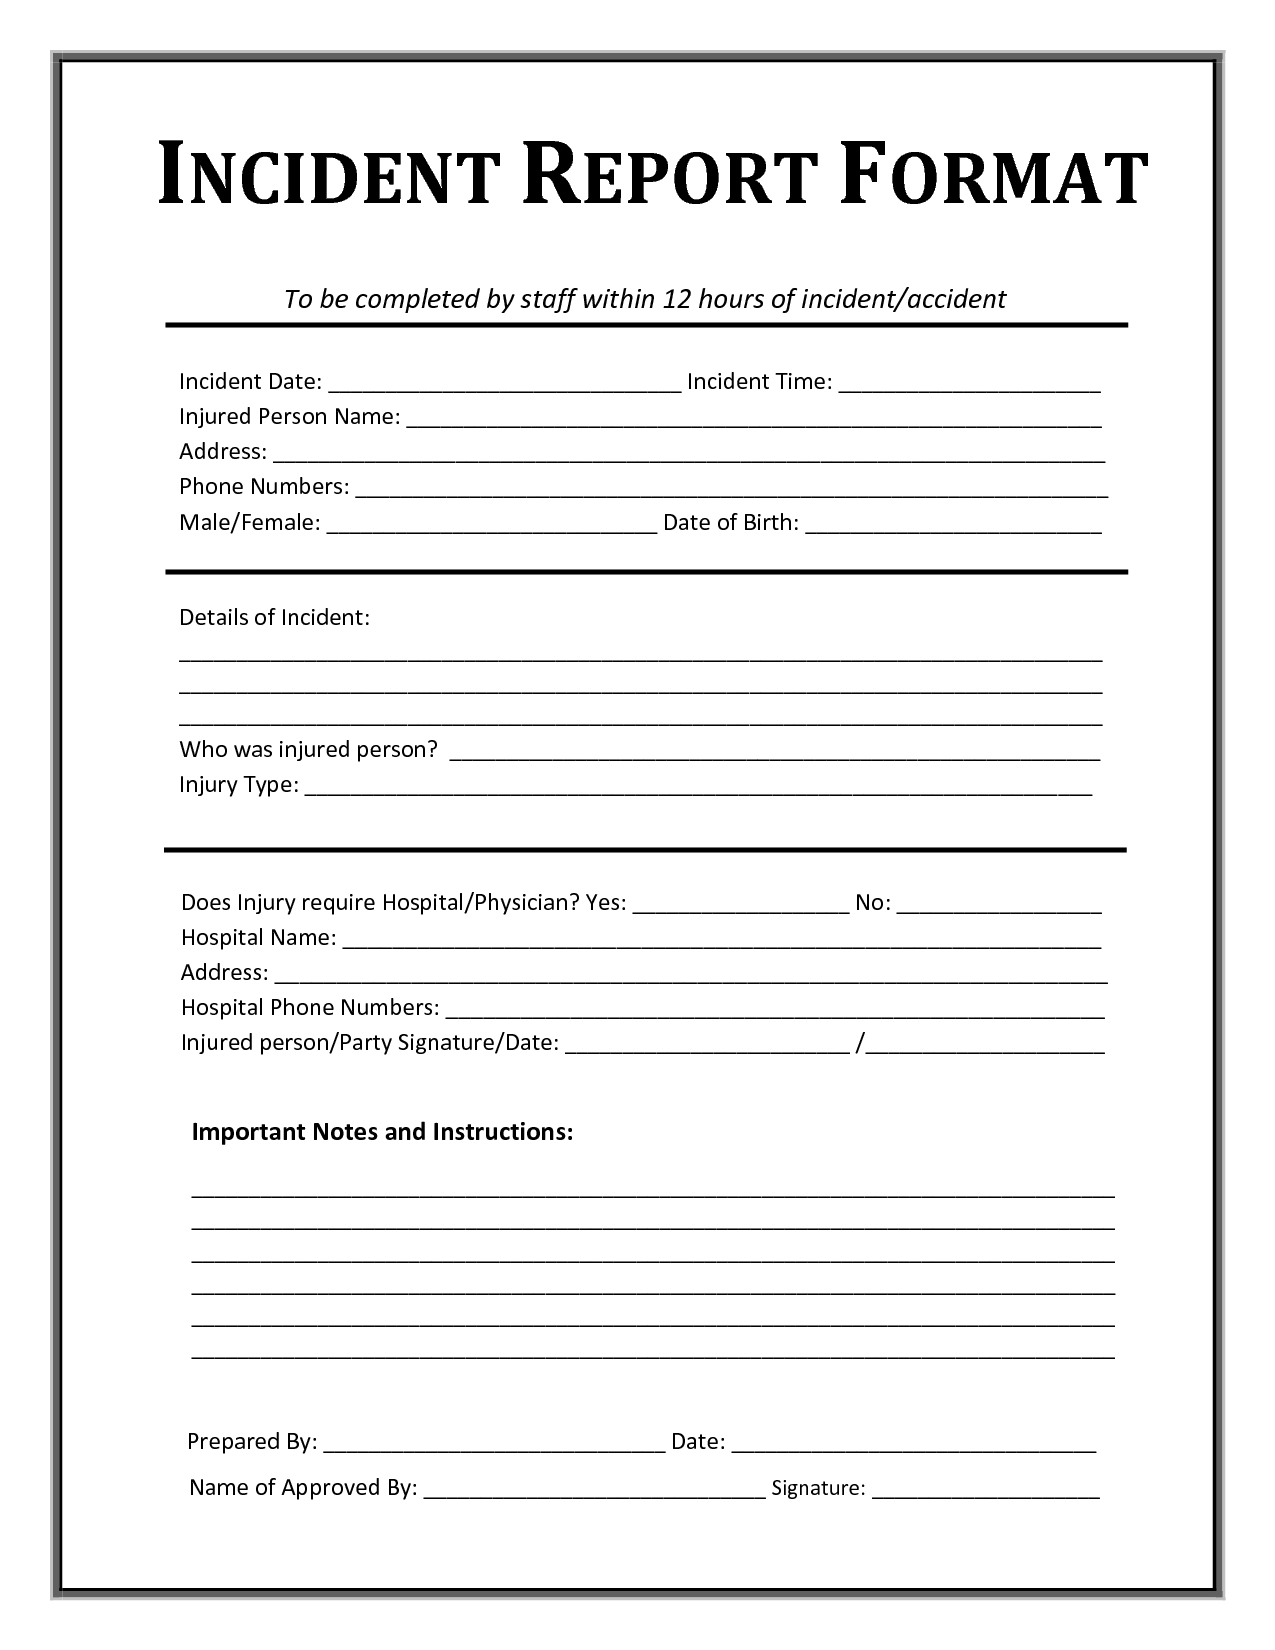 ohs incident report template free - incident report form template after school sign in